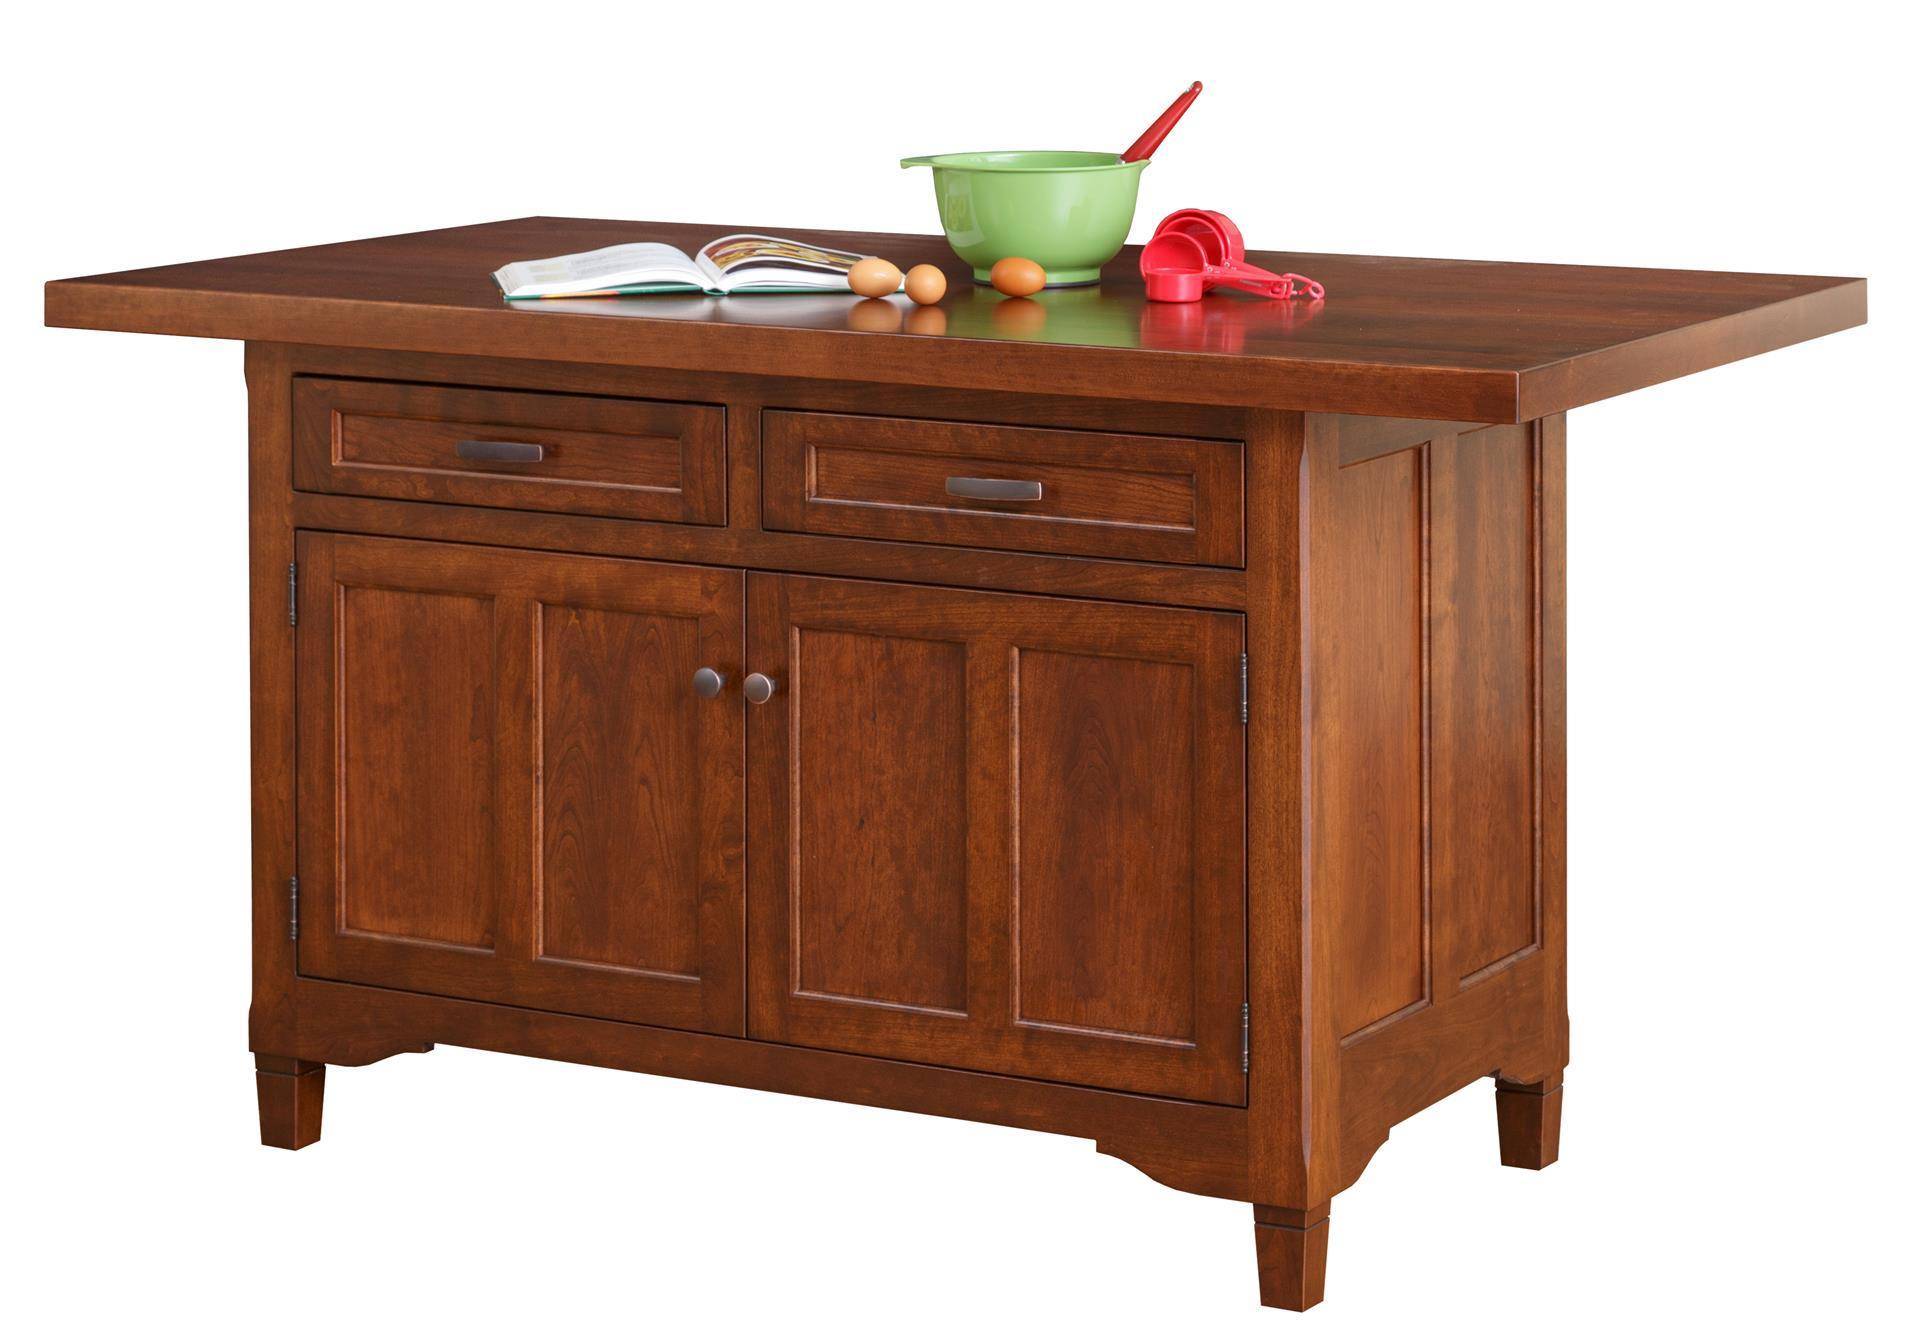 Shop The Look Amish Lexington Solid Wood Kitchen Island Set